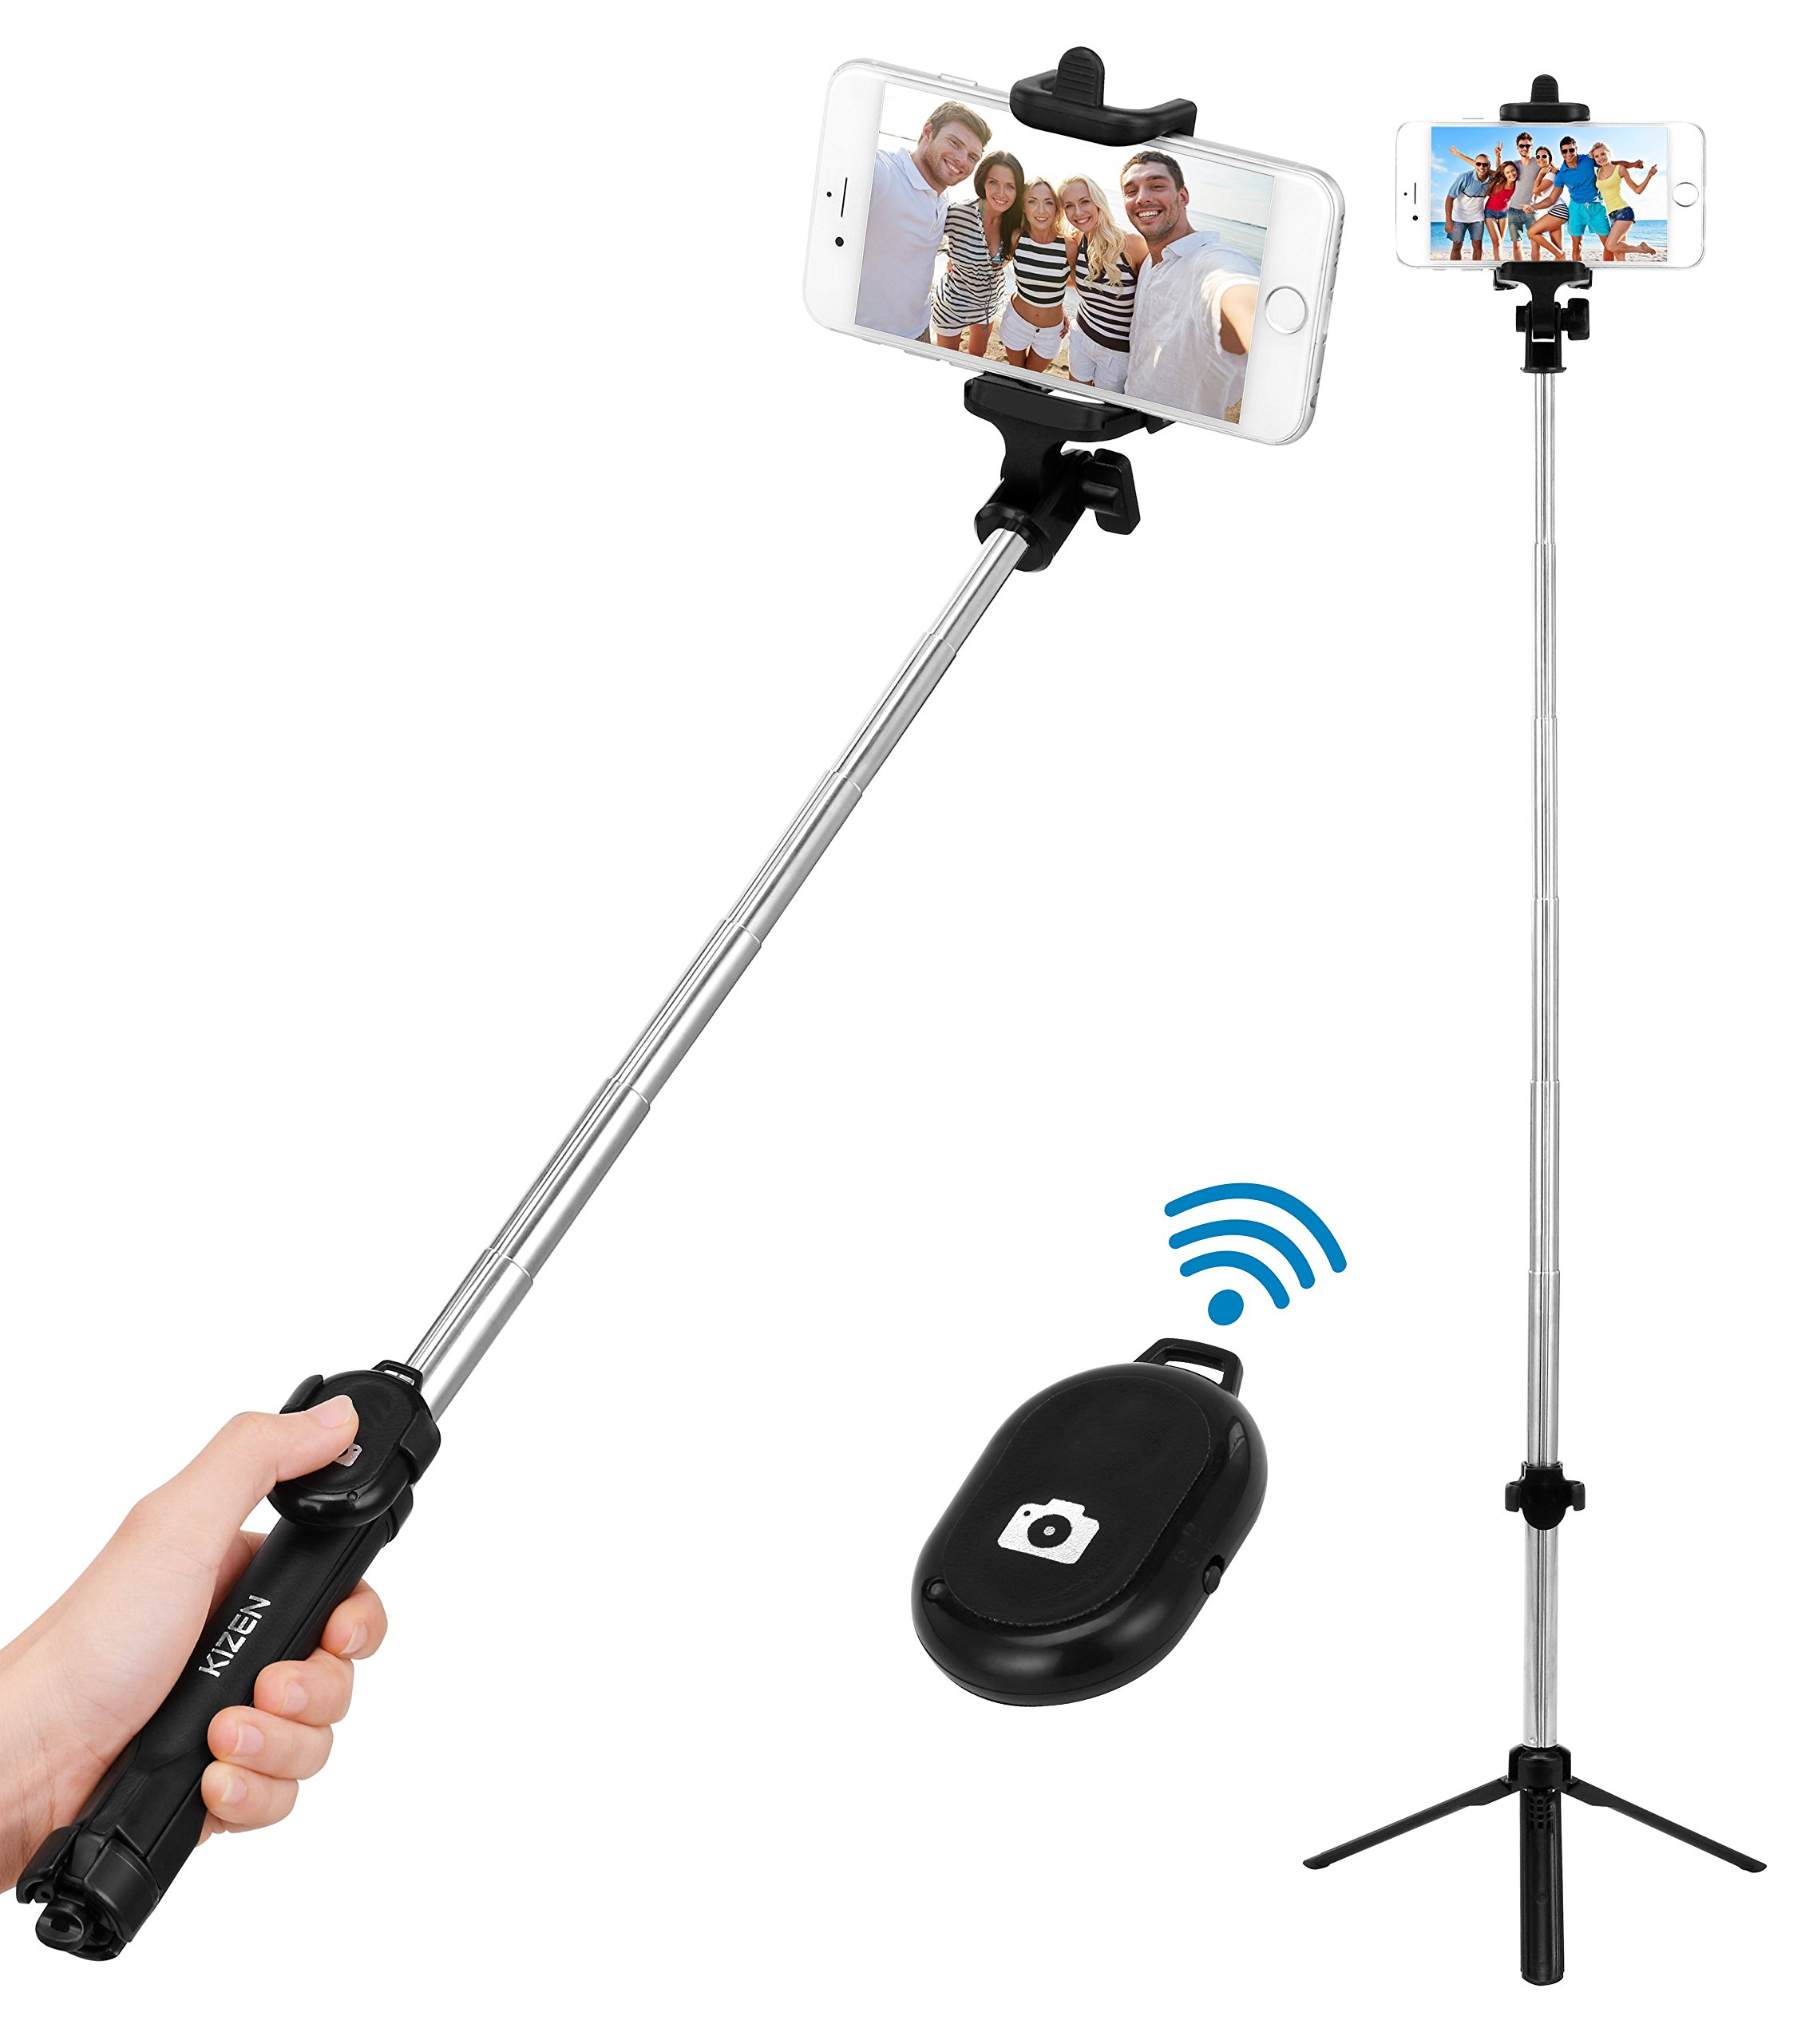 Kizen Selfie Stick Monopod with Built-In Tripod and Wireless Remote Shutter. Dual Side Head, Wireless, 270 Degree Adjustable. For Apple iPhone 5,6,7,8,X & Plus, Samsung Galaxy S5,S6,S7,S8 Android